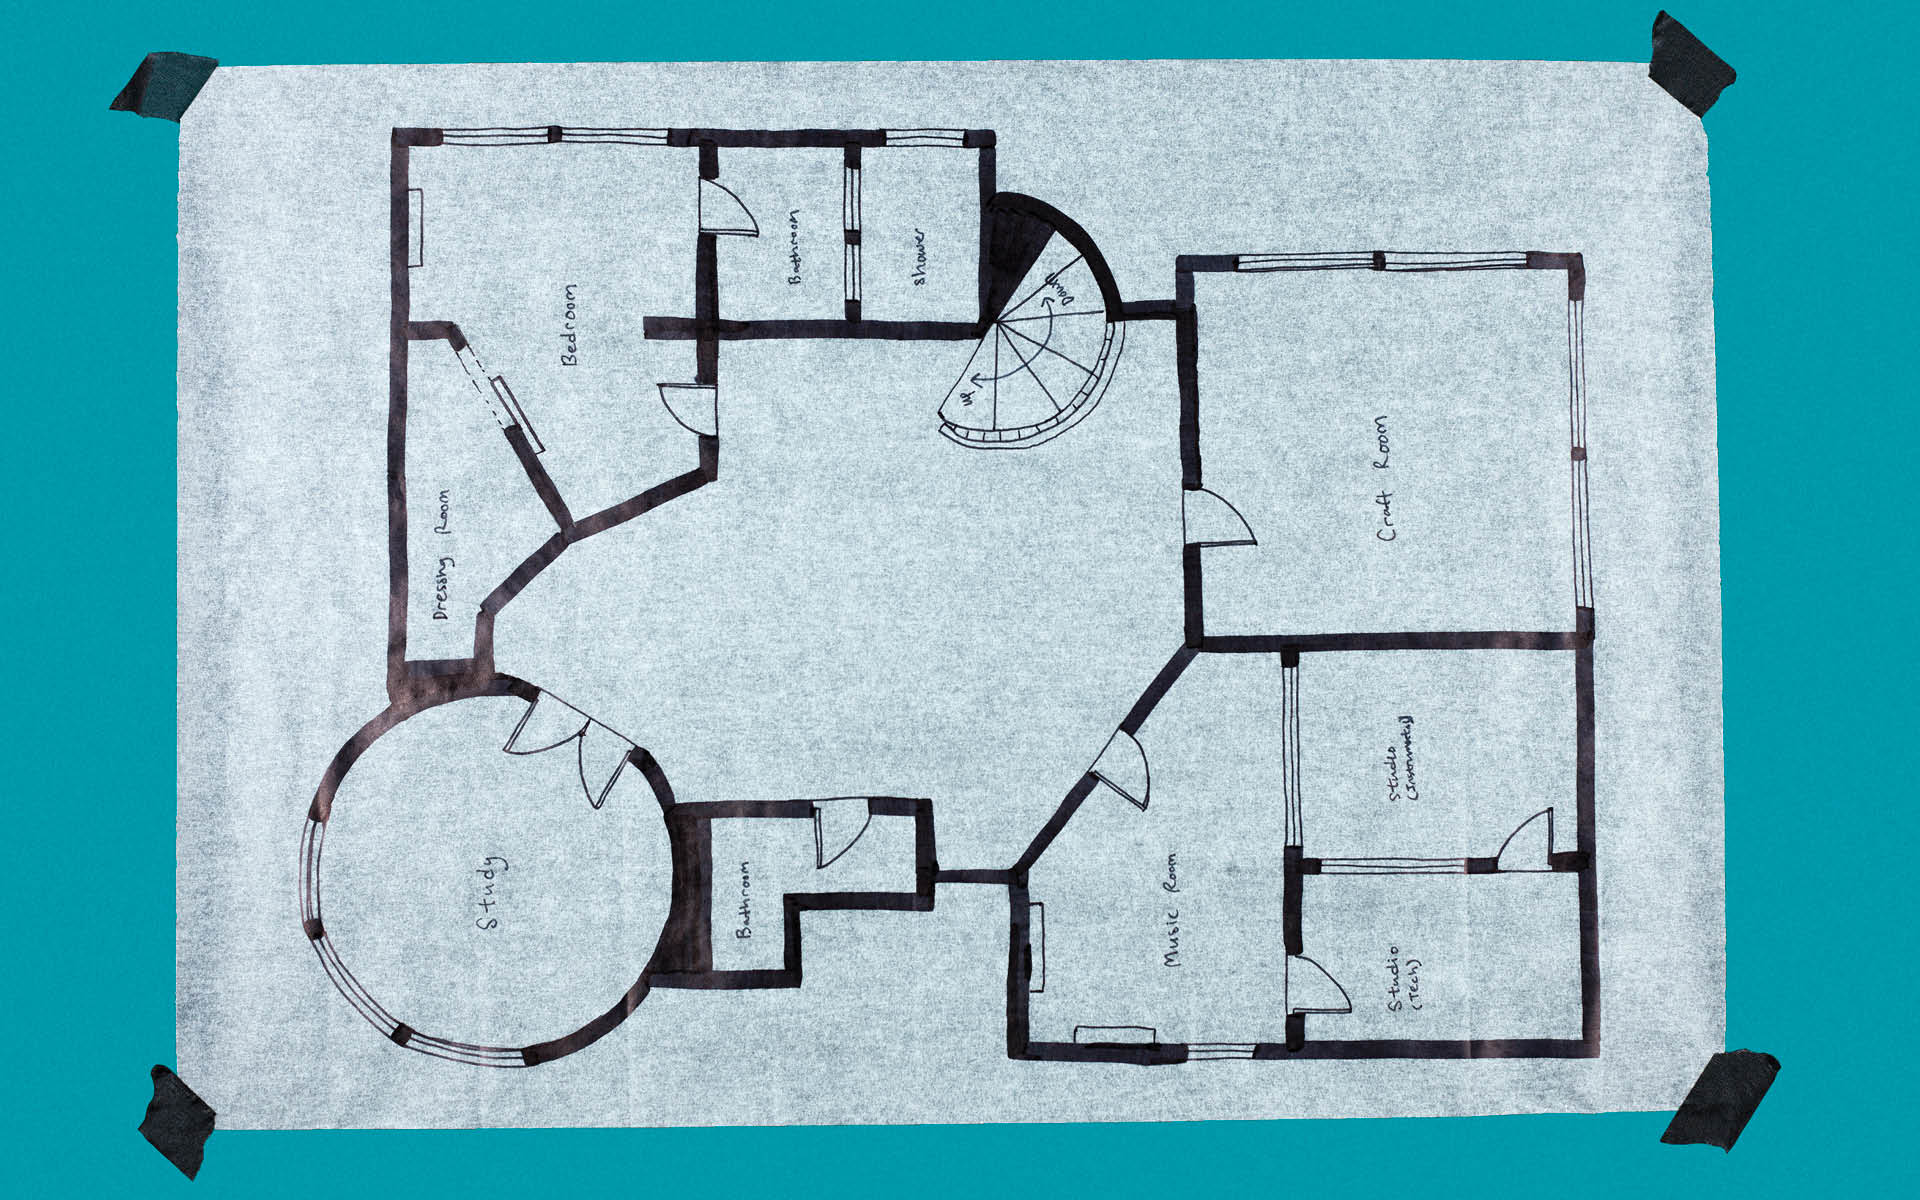 floor plan, DIY Like an Architect